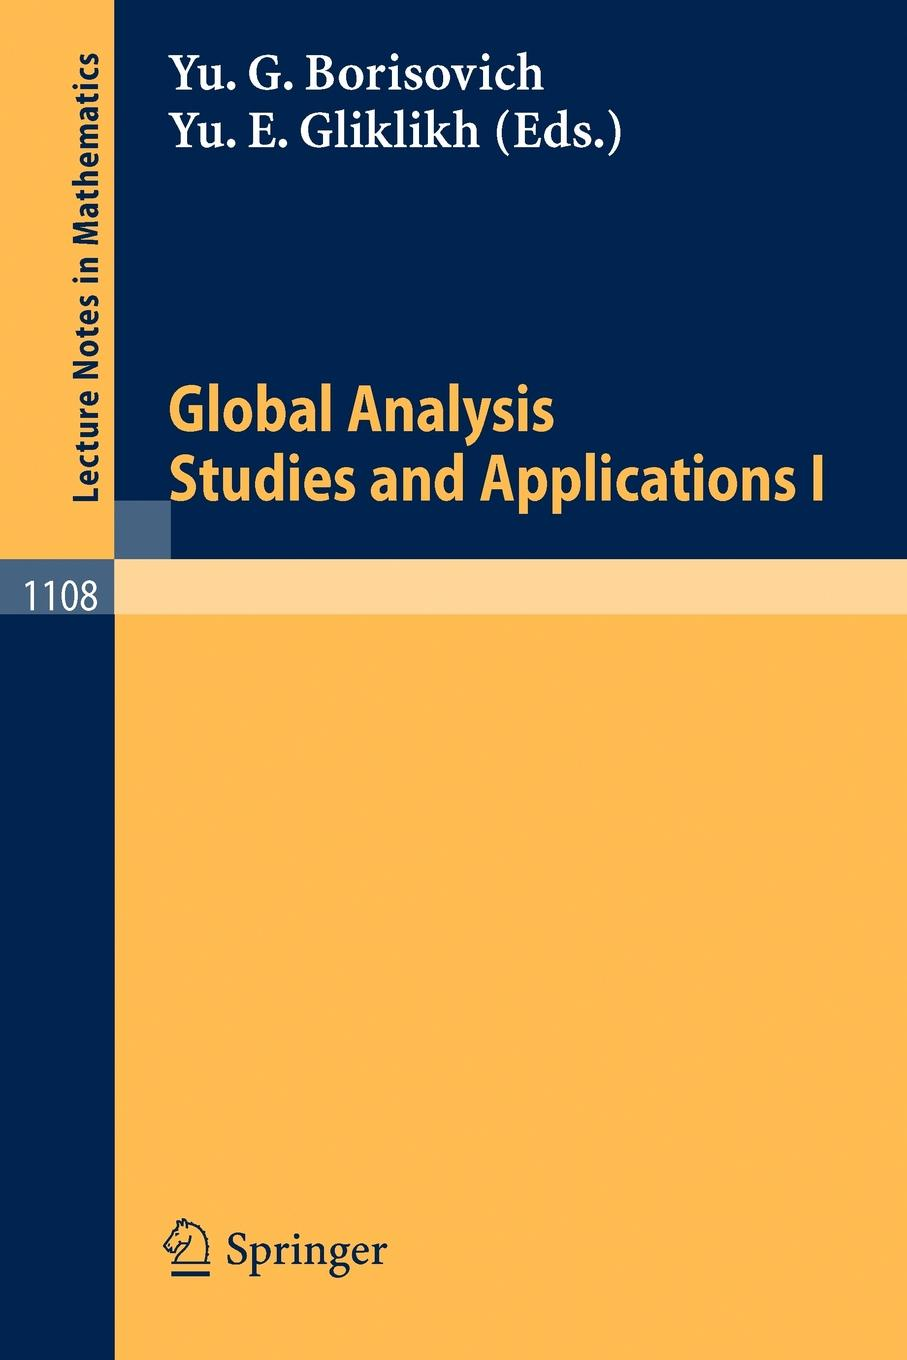 все цены на Global Analysis. Studies and Applications I онлайн